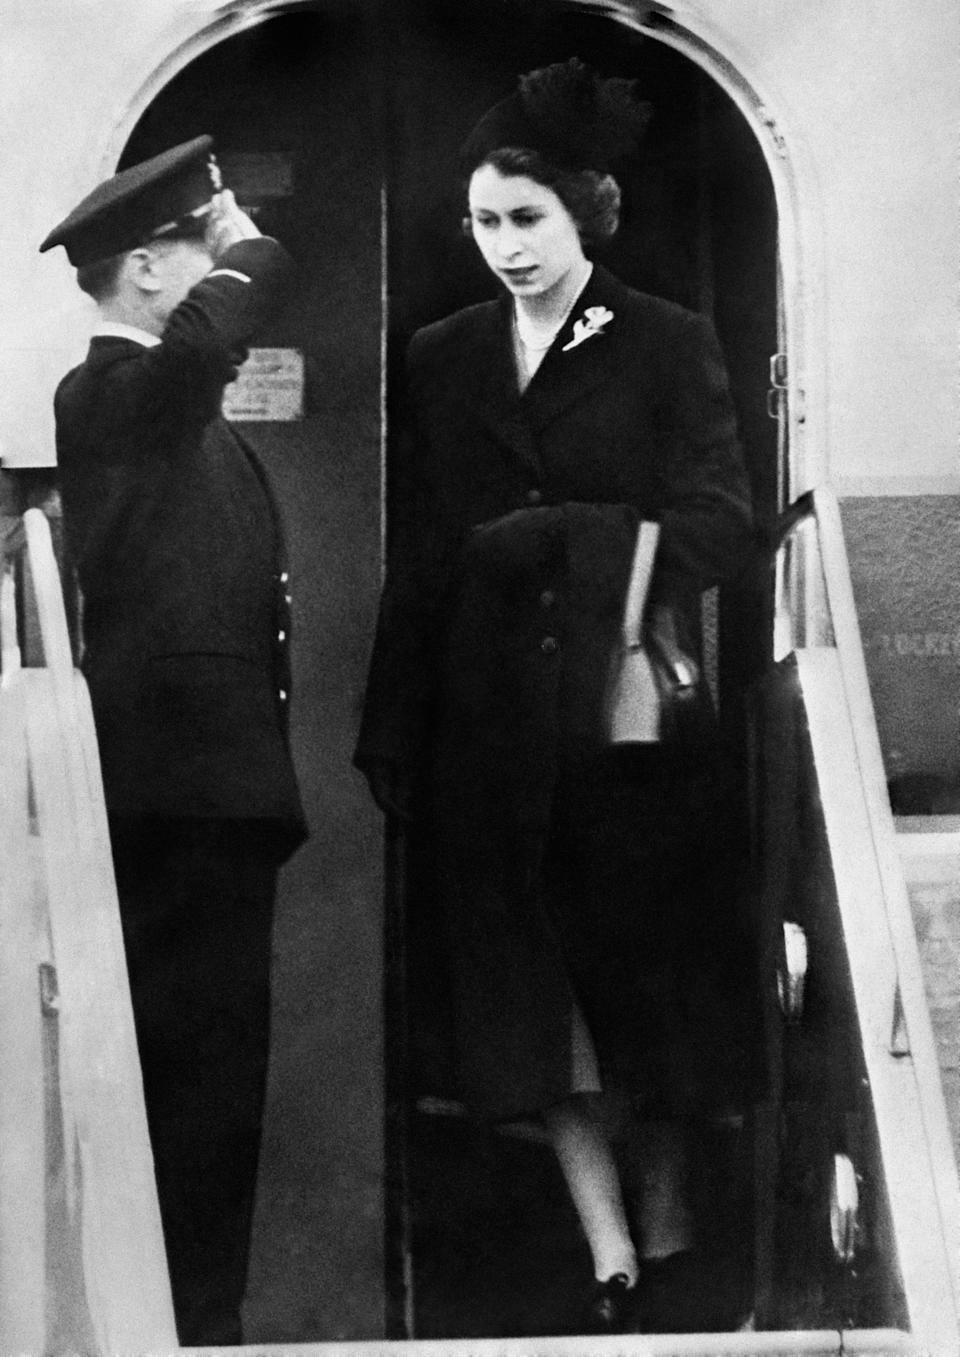 Dressed in black Queen Elizabeth II sets foot on British soil for the first time since her accession as she lands at London Airport after her day and night flight from Kenya following the death of her father, King George VI.   (Photo by PA Images via Getty Images)